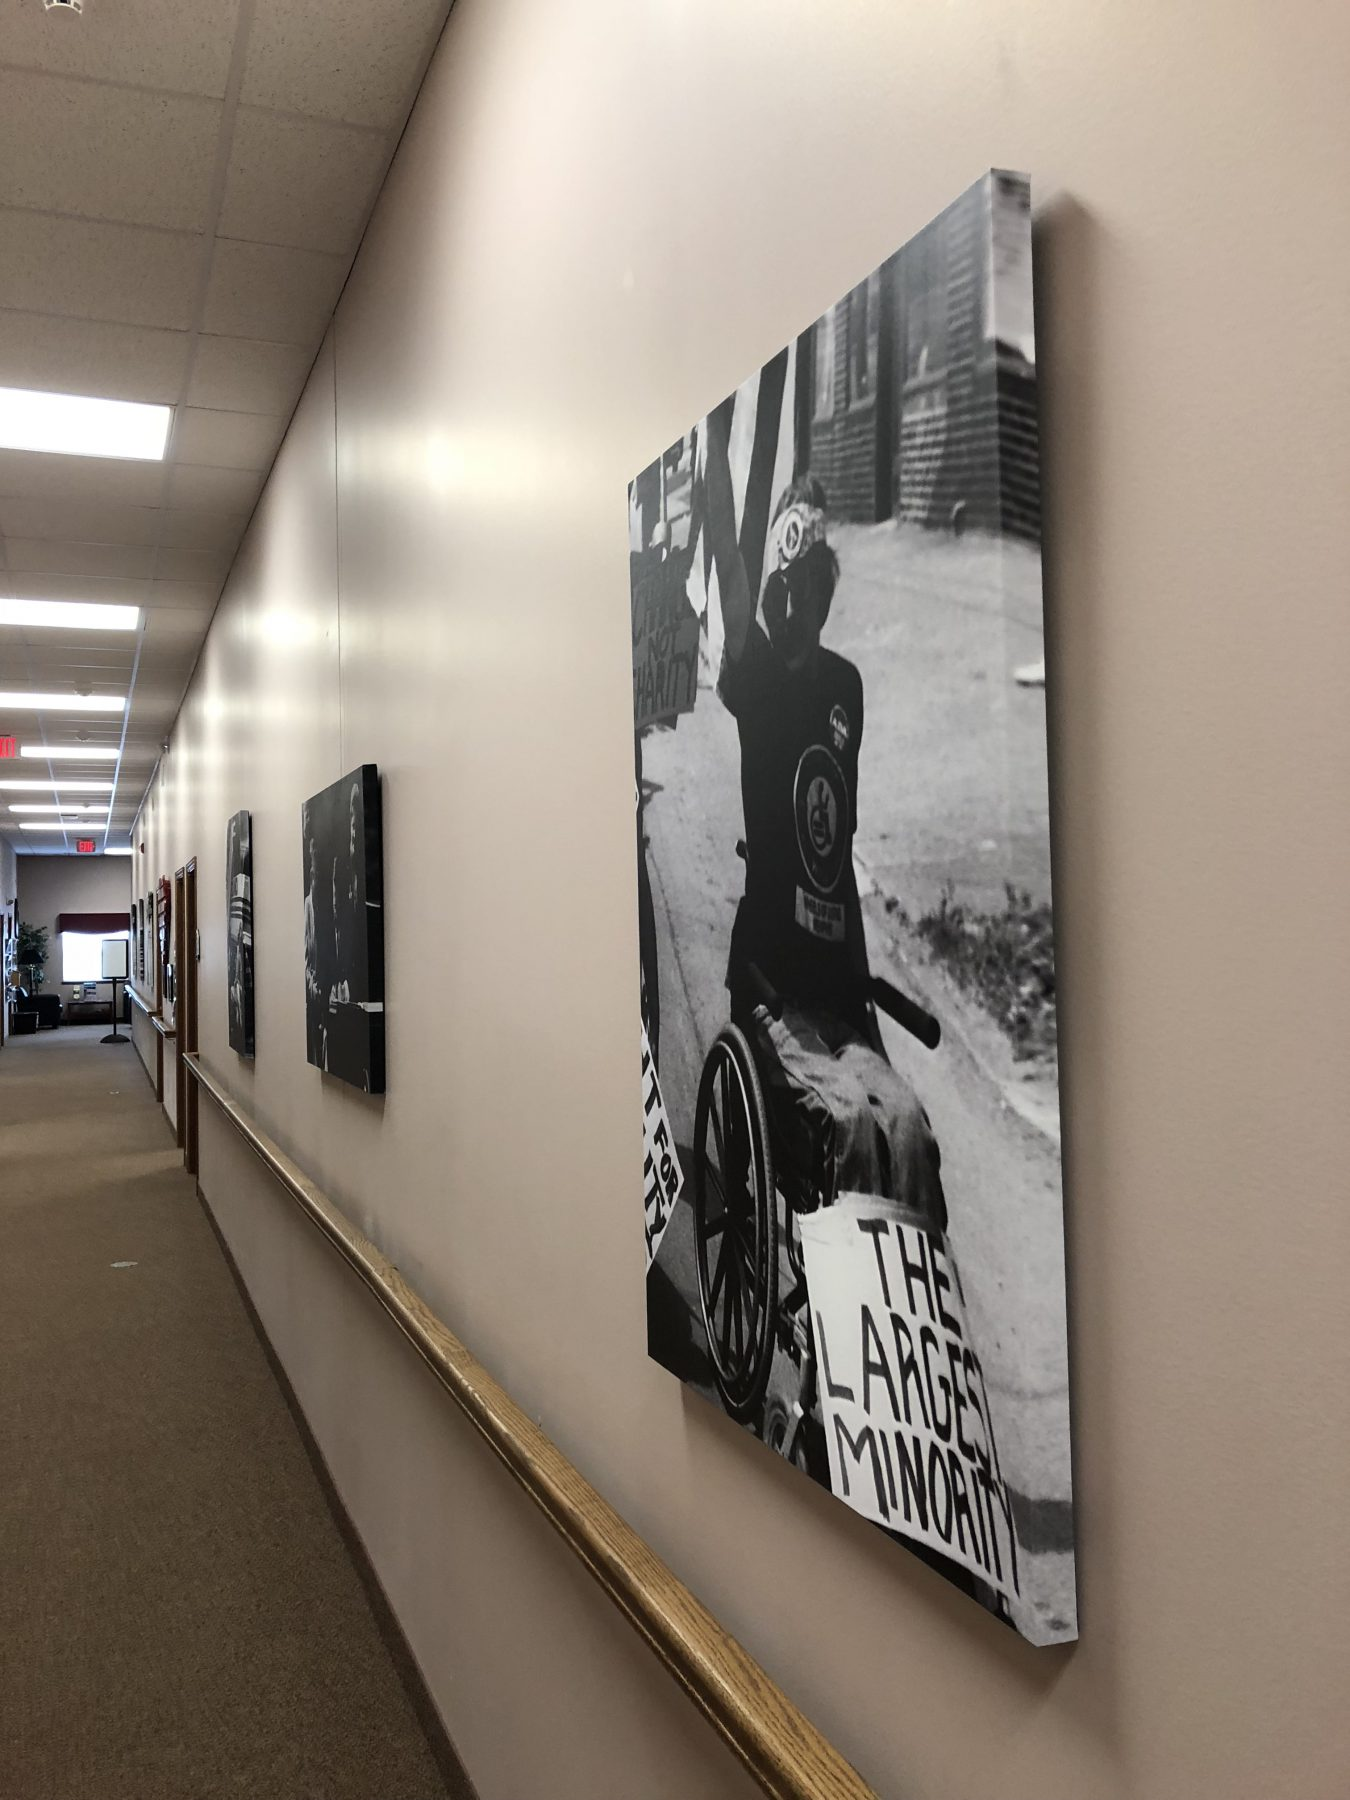 Office hallway with hand railing and Tom Olin's black and white photos hung on the wall